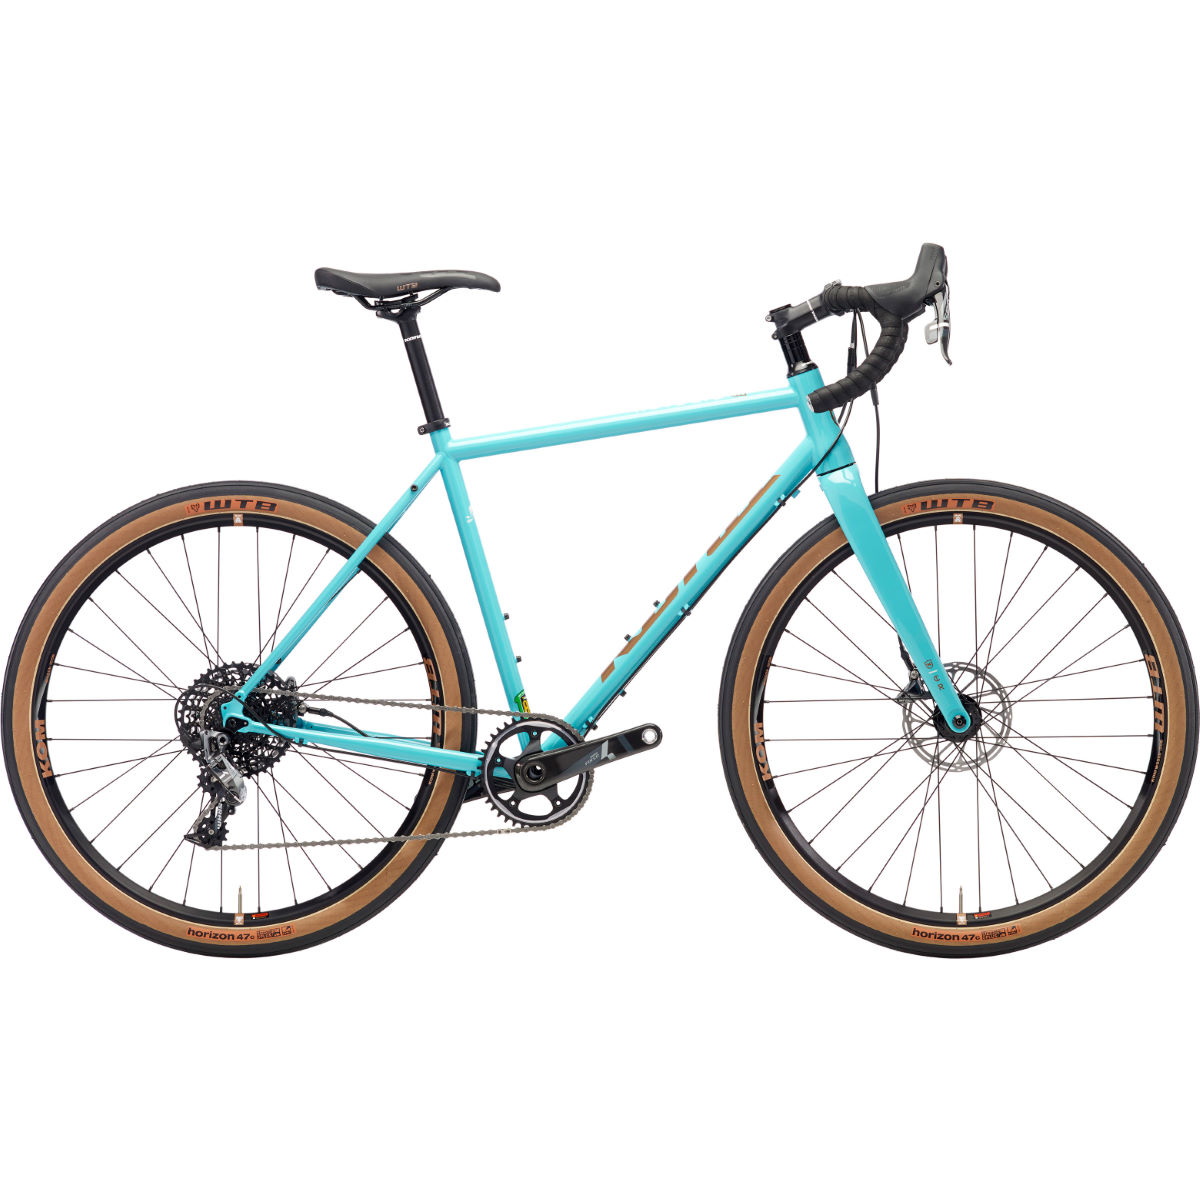 Vélo de route Kona Rove LTD (2018) - 50cm Stock Bike Bleu